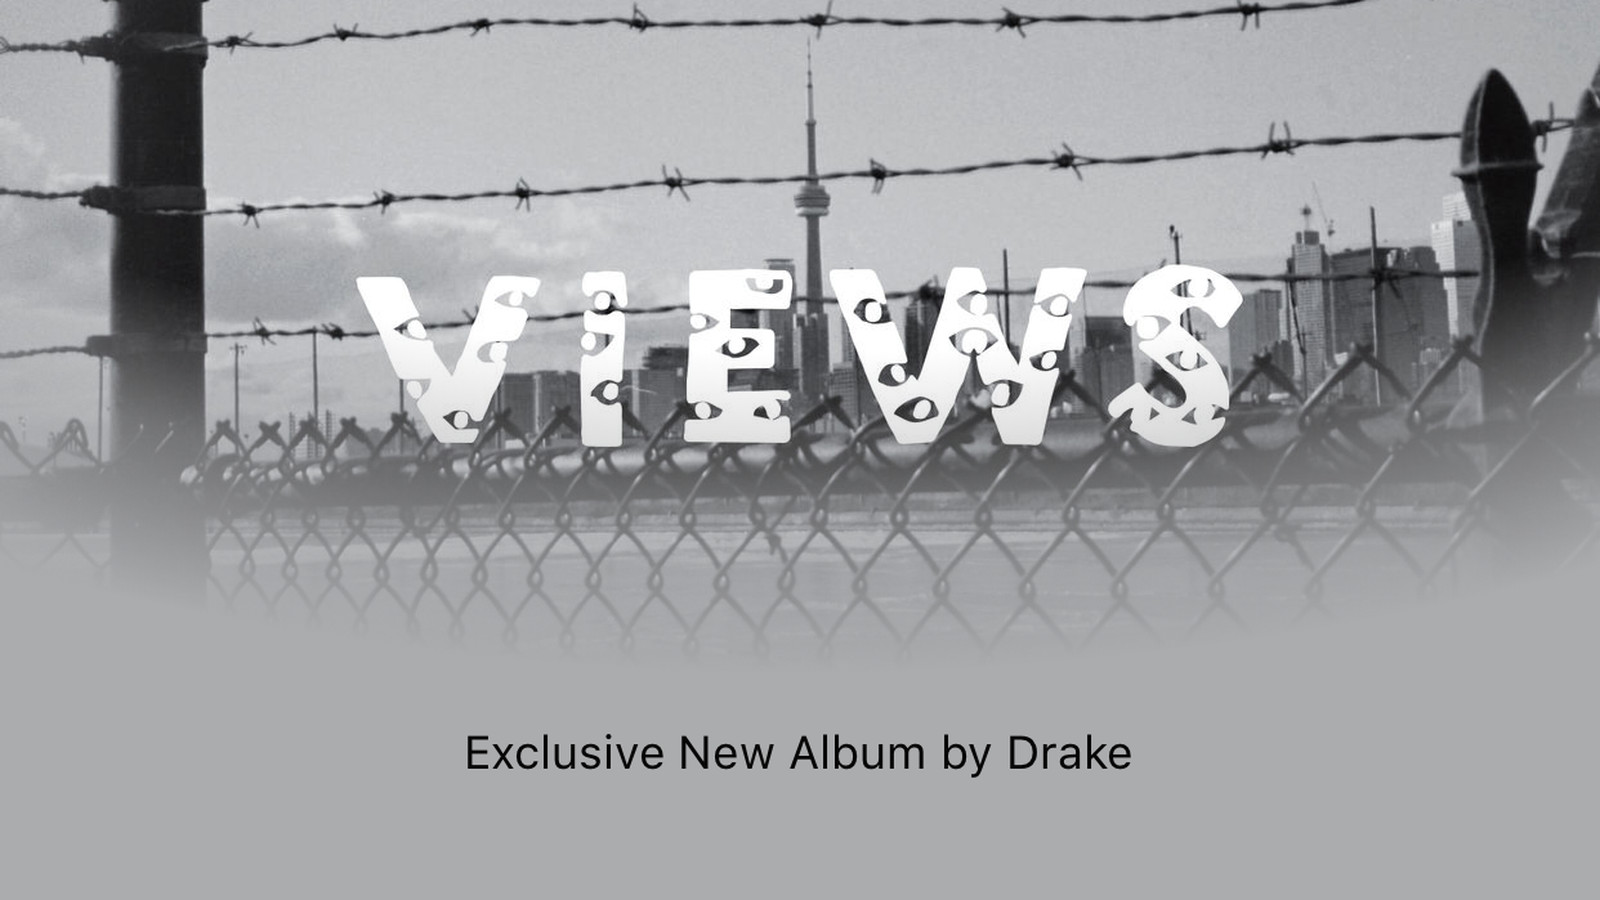 Exclusive albums are the new normal | The Verge